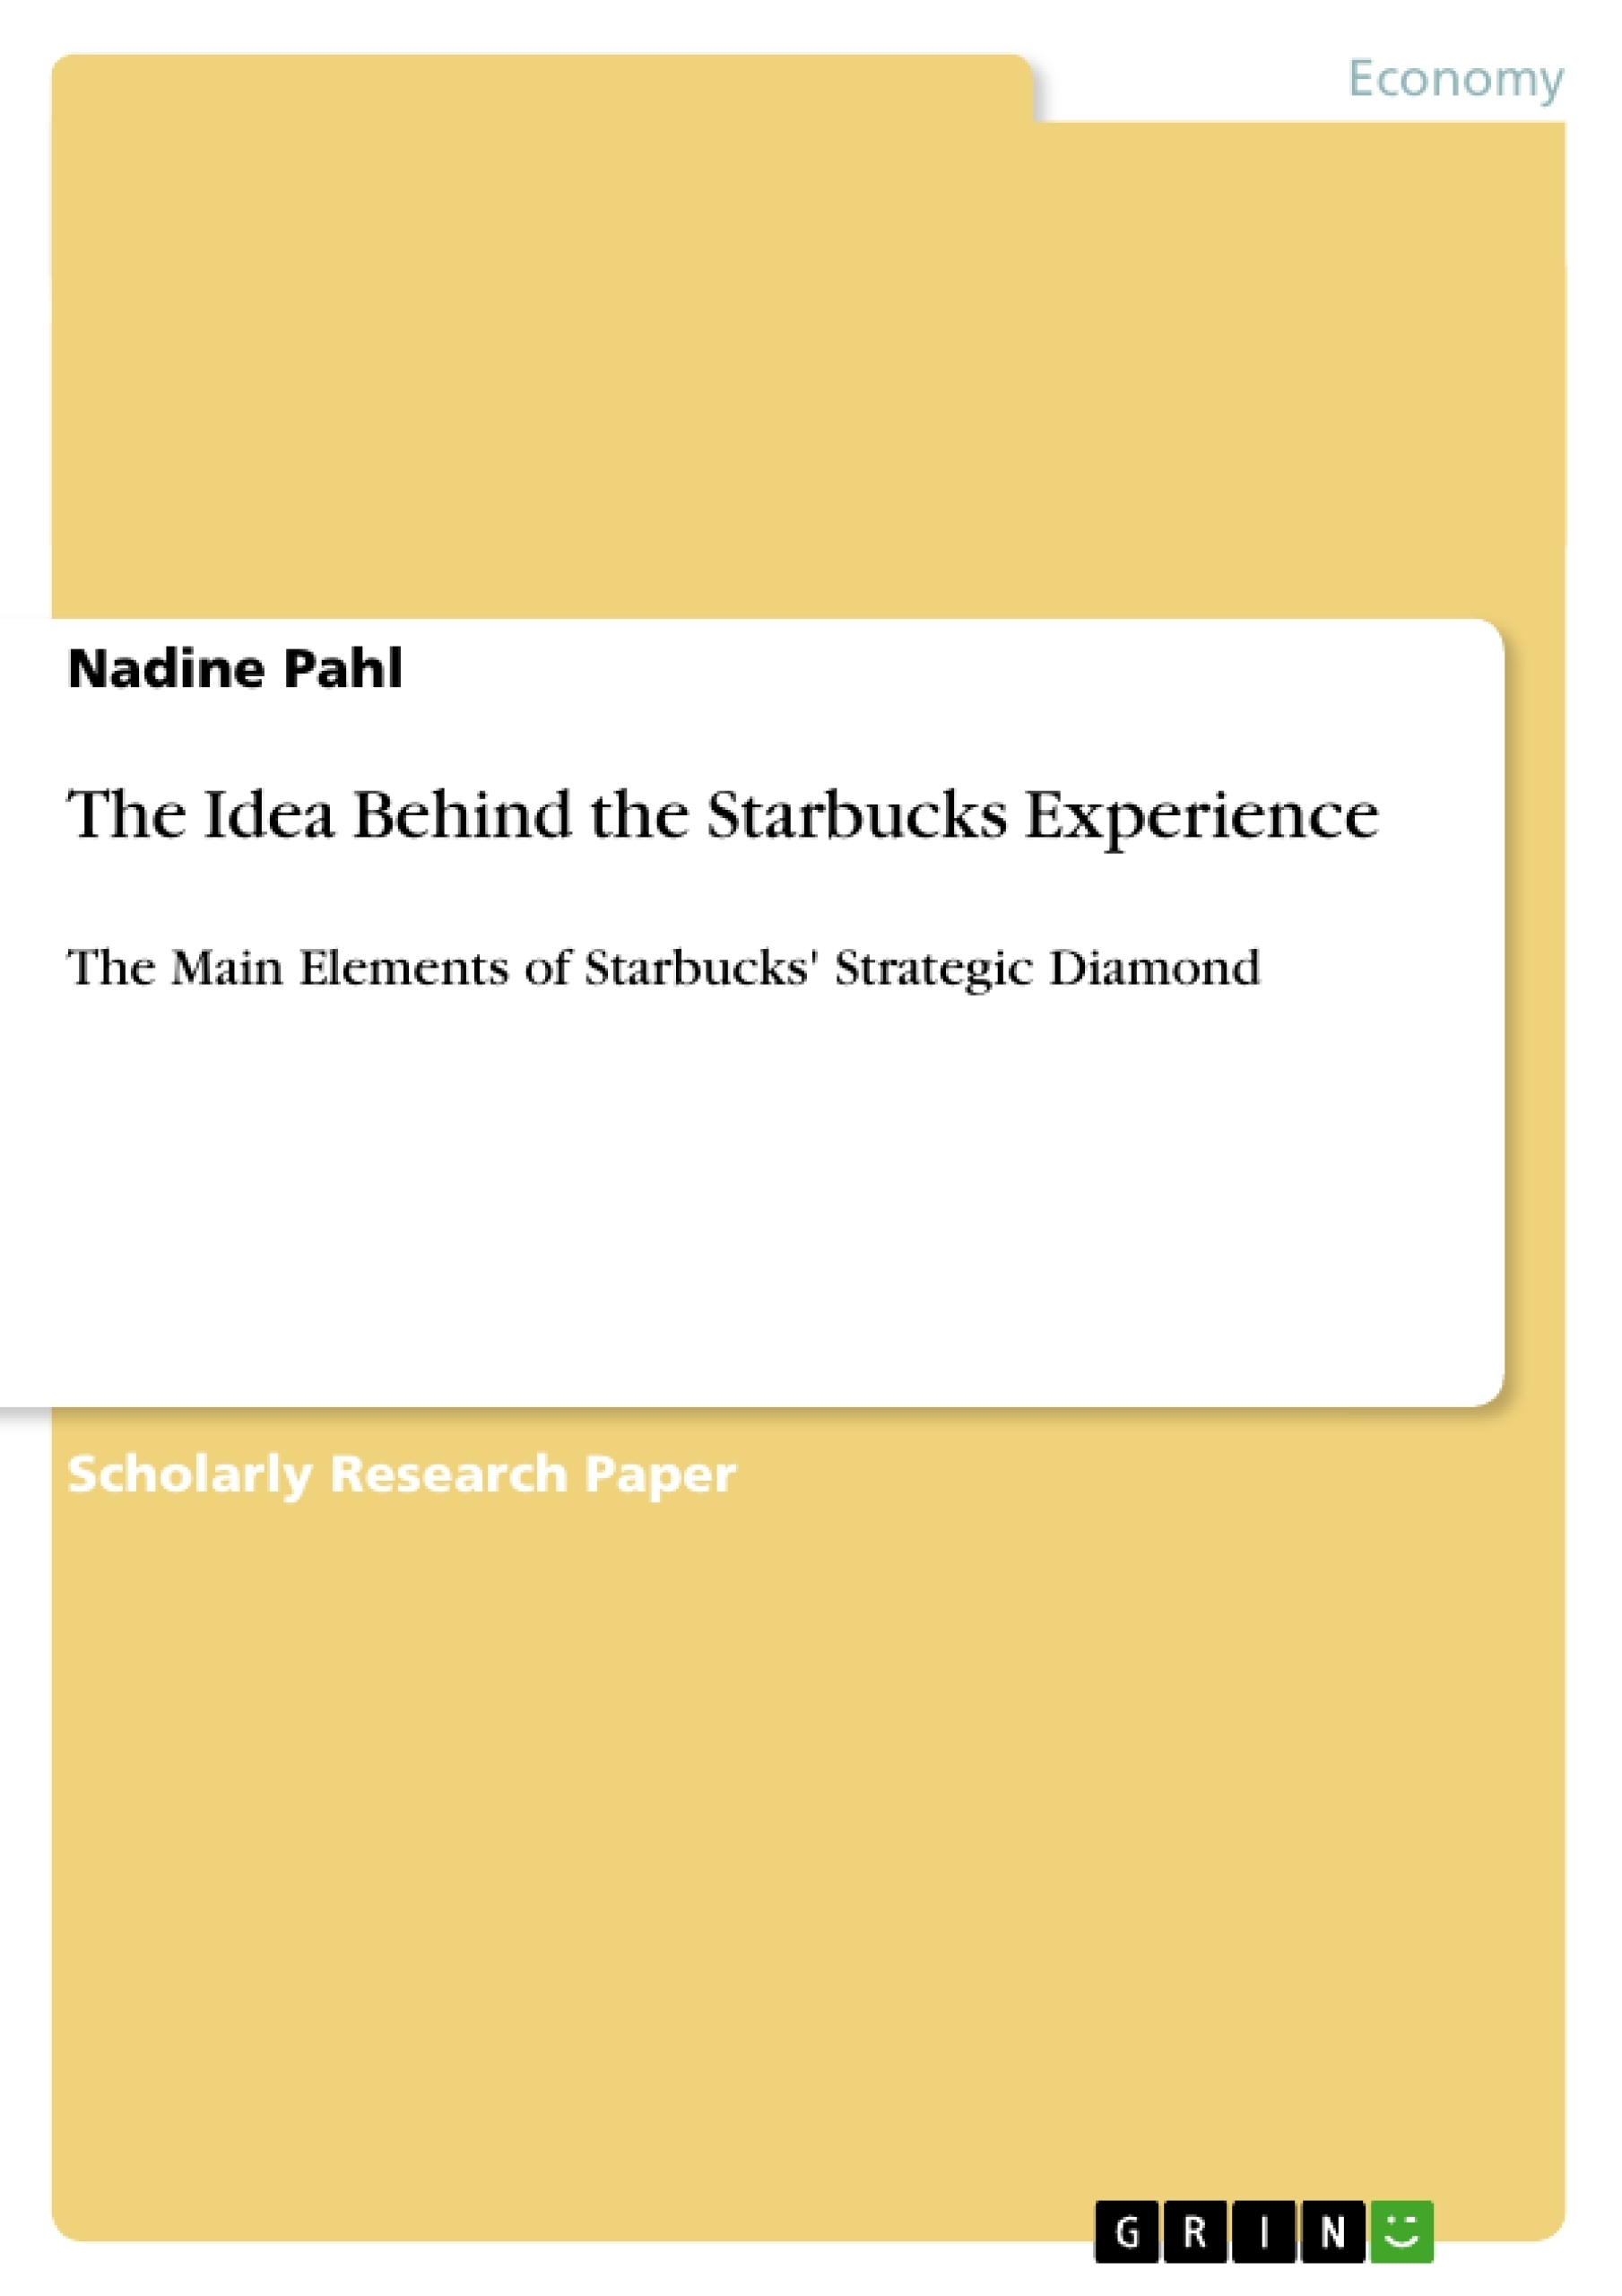 Title: The Idea Behind the Starbucks Experience